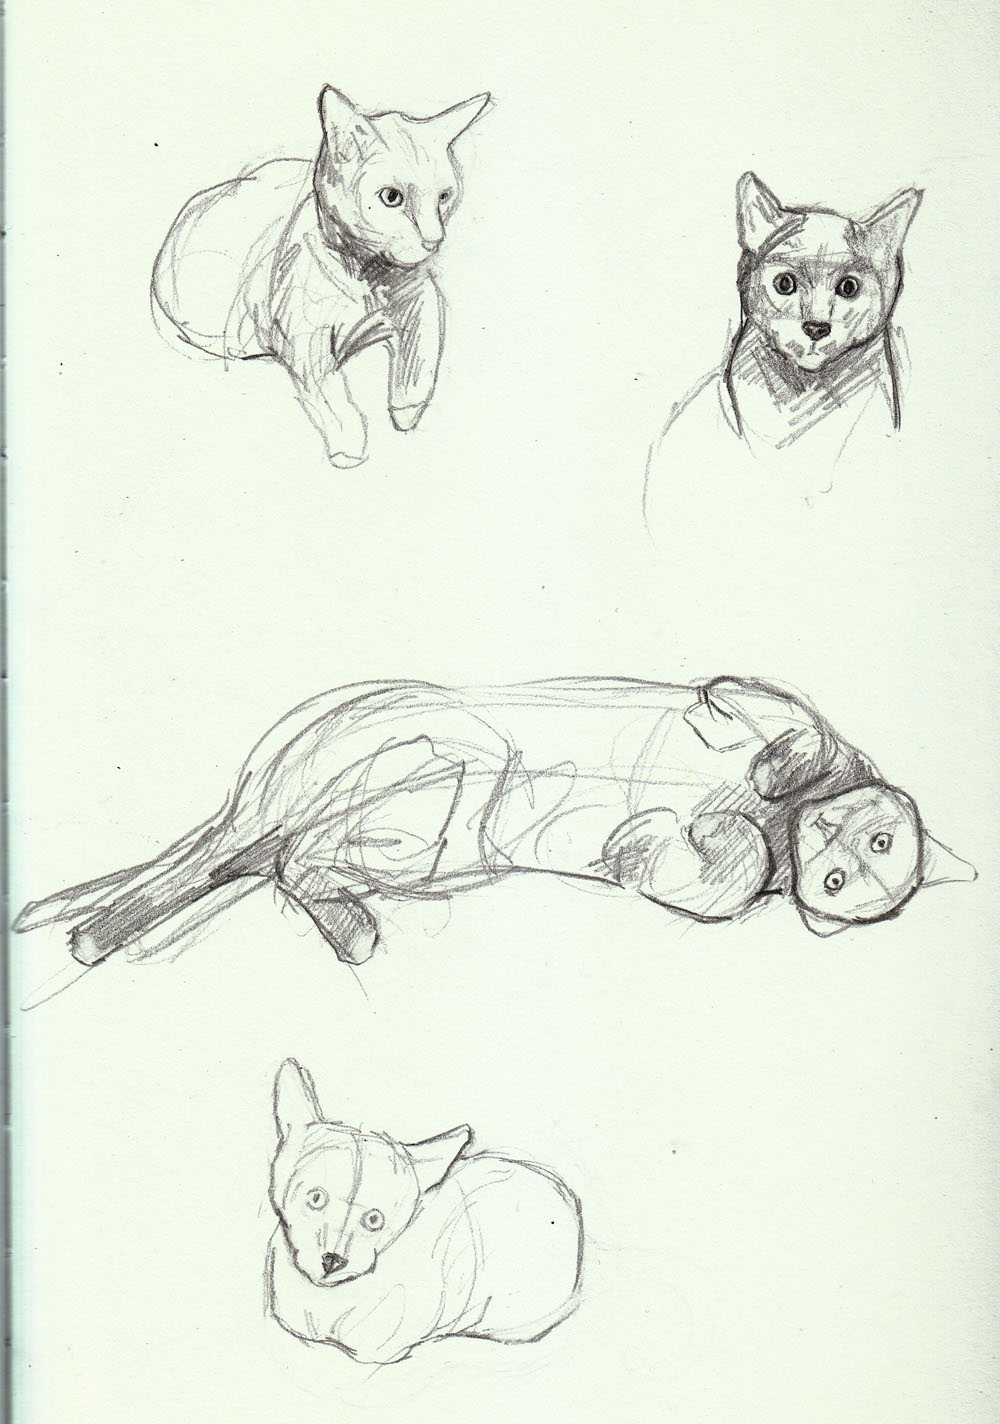 Nori Kun sketches getting to know the cat